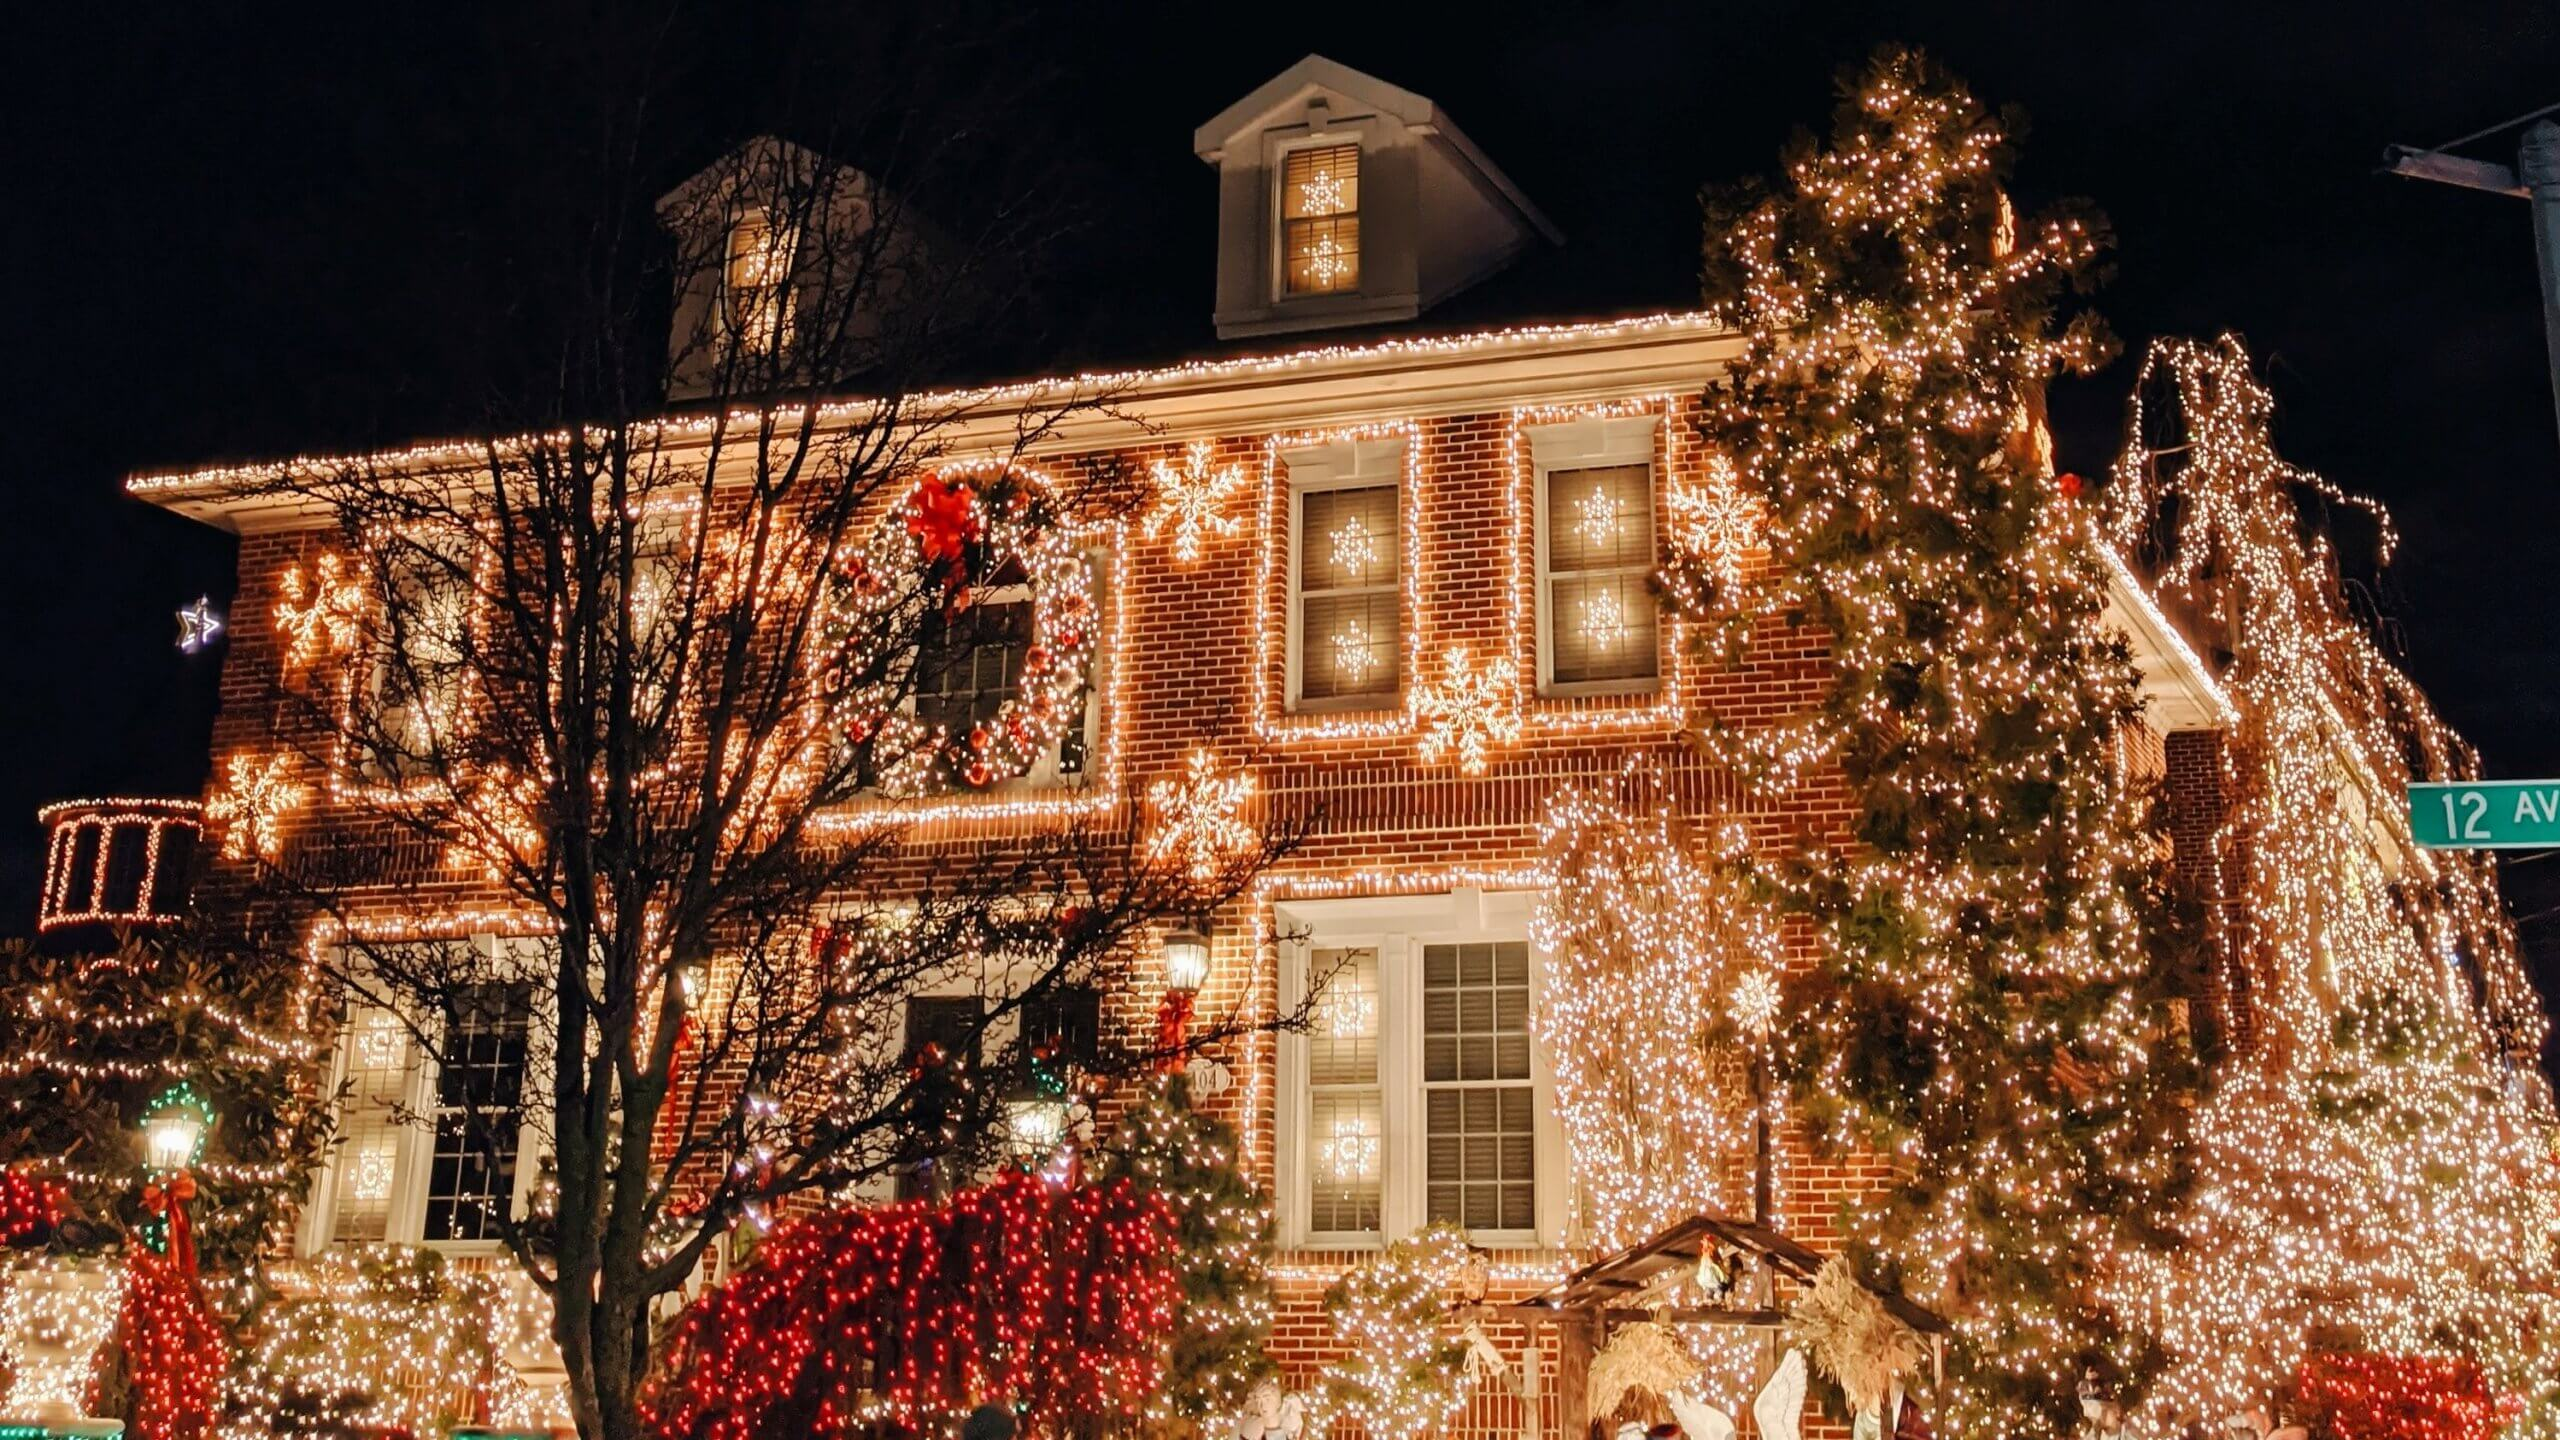 Festive christmas scene with lights on a house